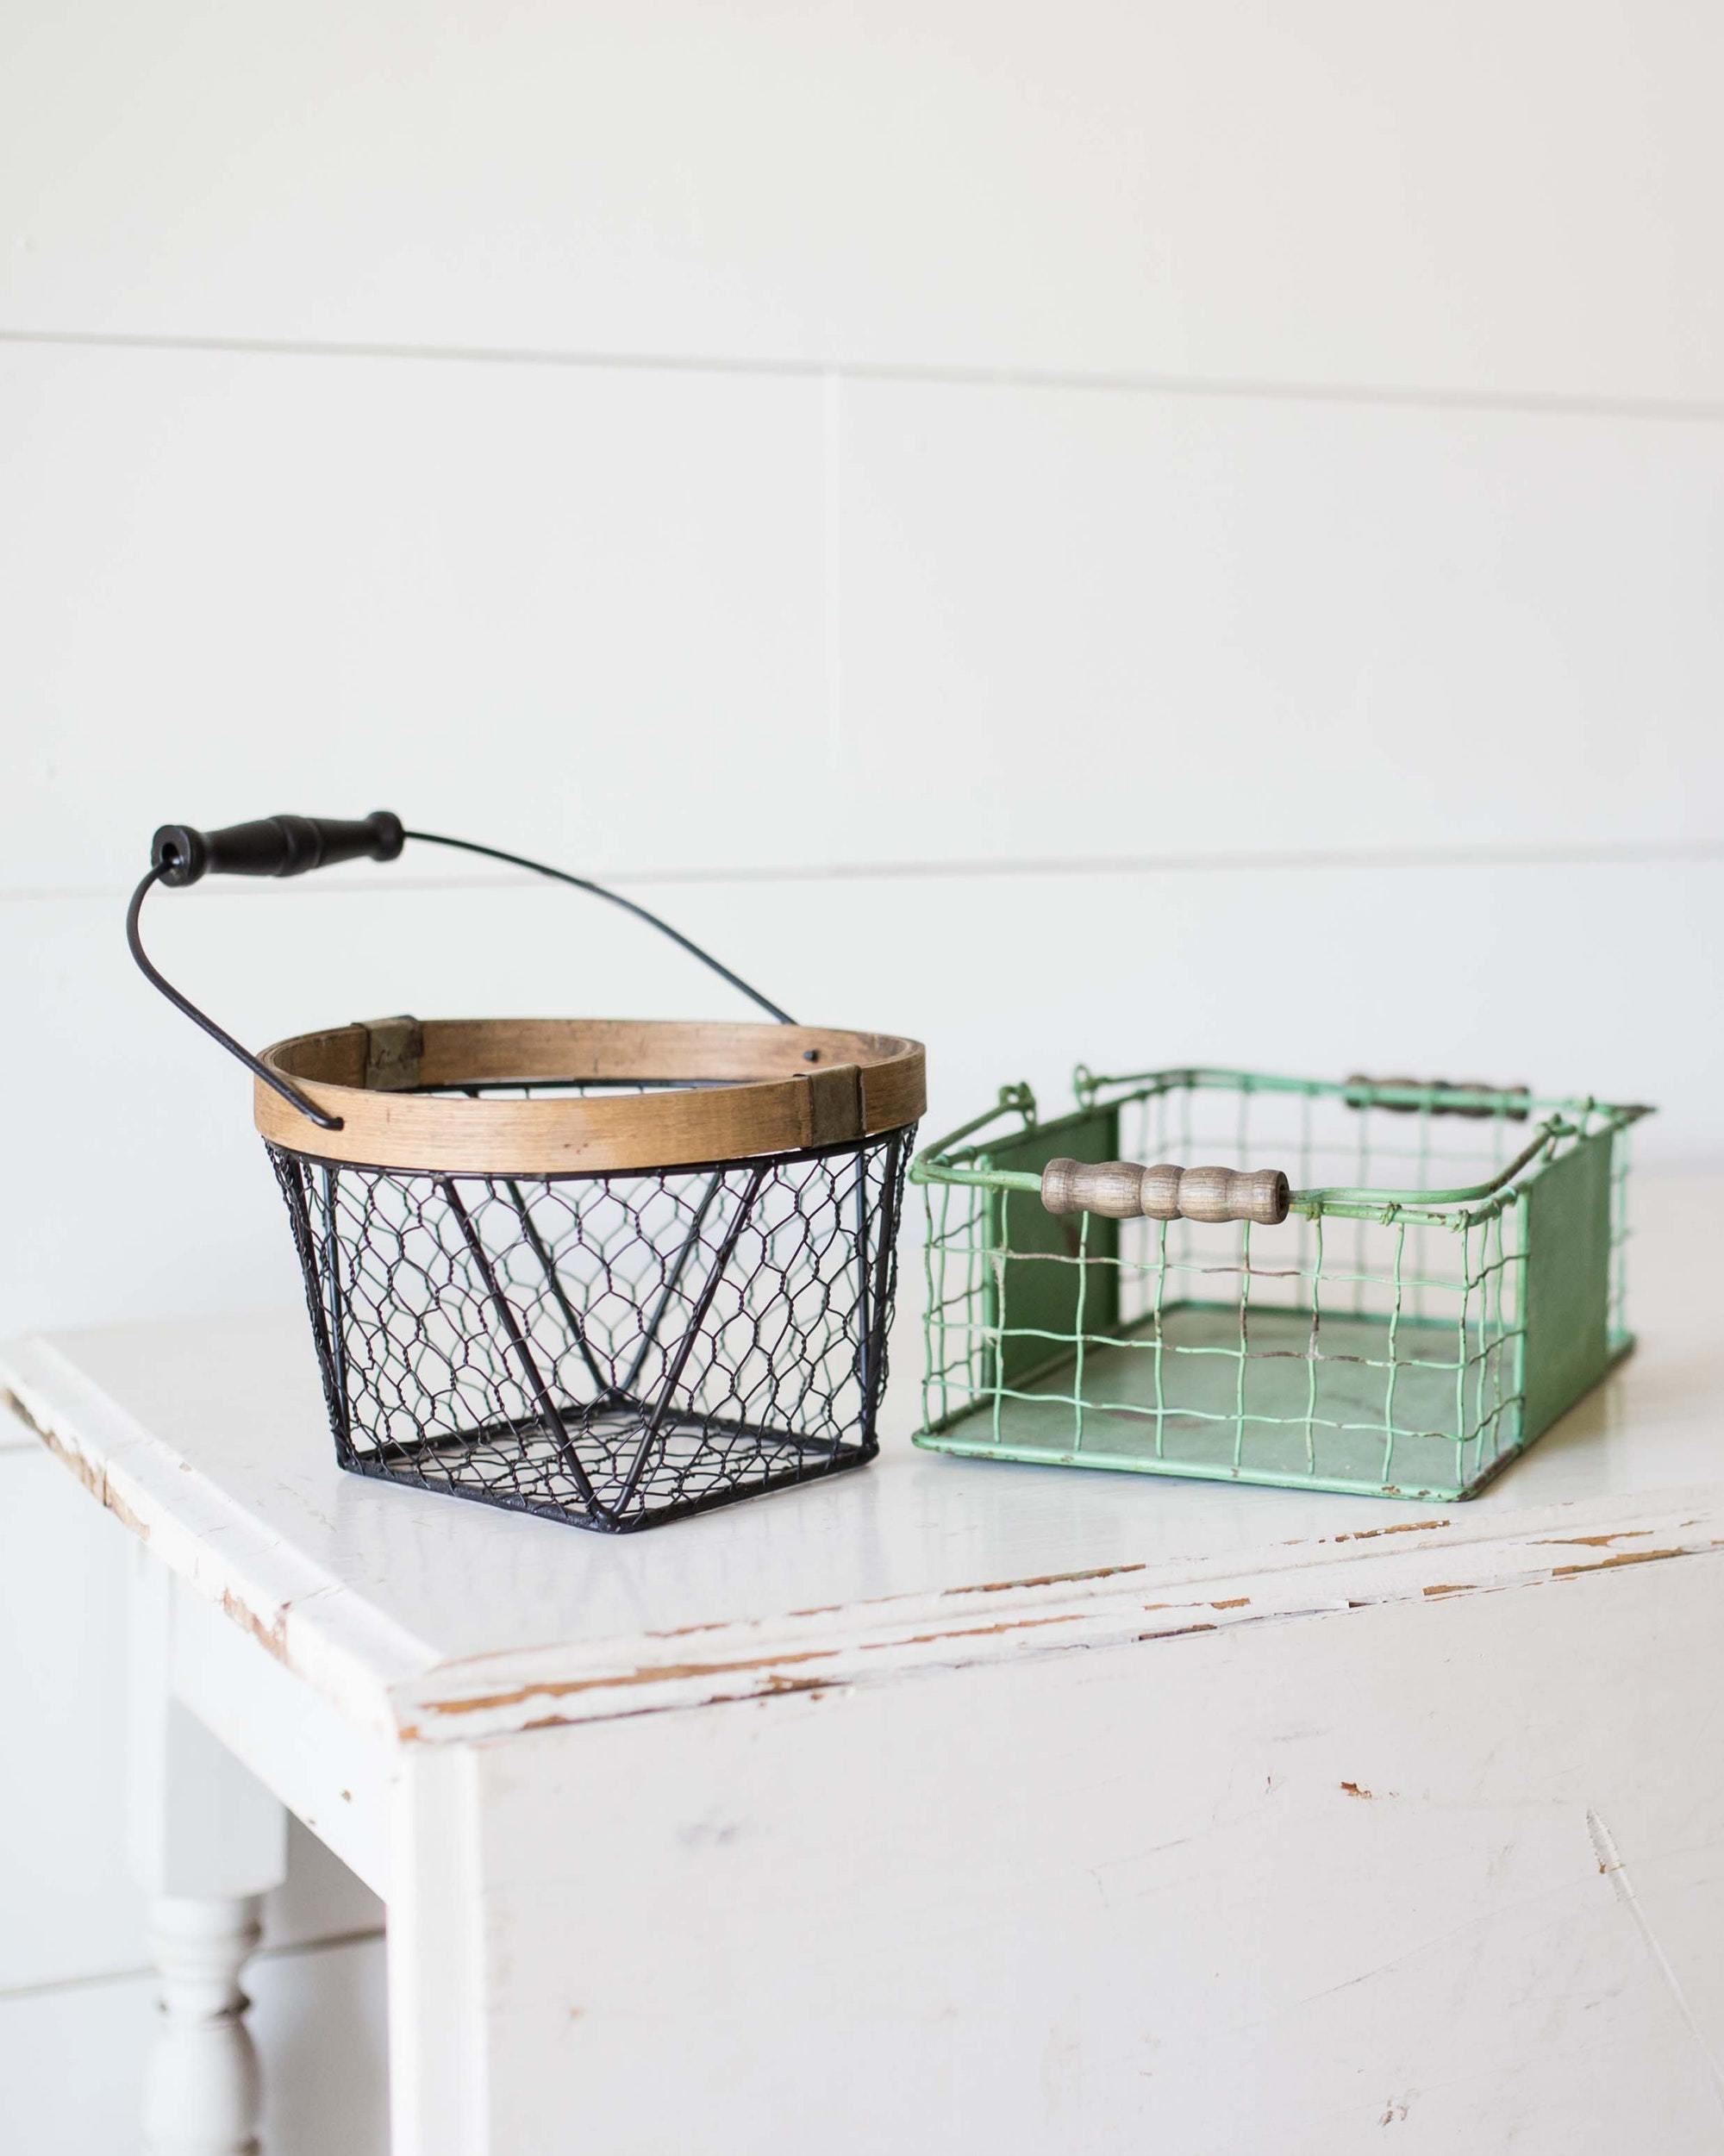 Some knickknacks from the farm to enhance your farmhouse look. A couple of wire baskets that you can trim with a flour sack and put some fruit in or just put them up on the top of the cabinets to add flavor to your decor.